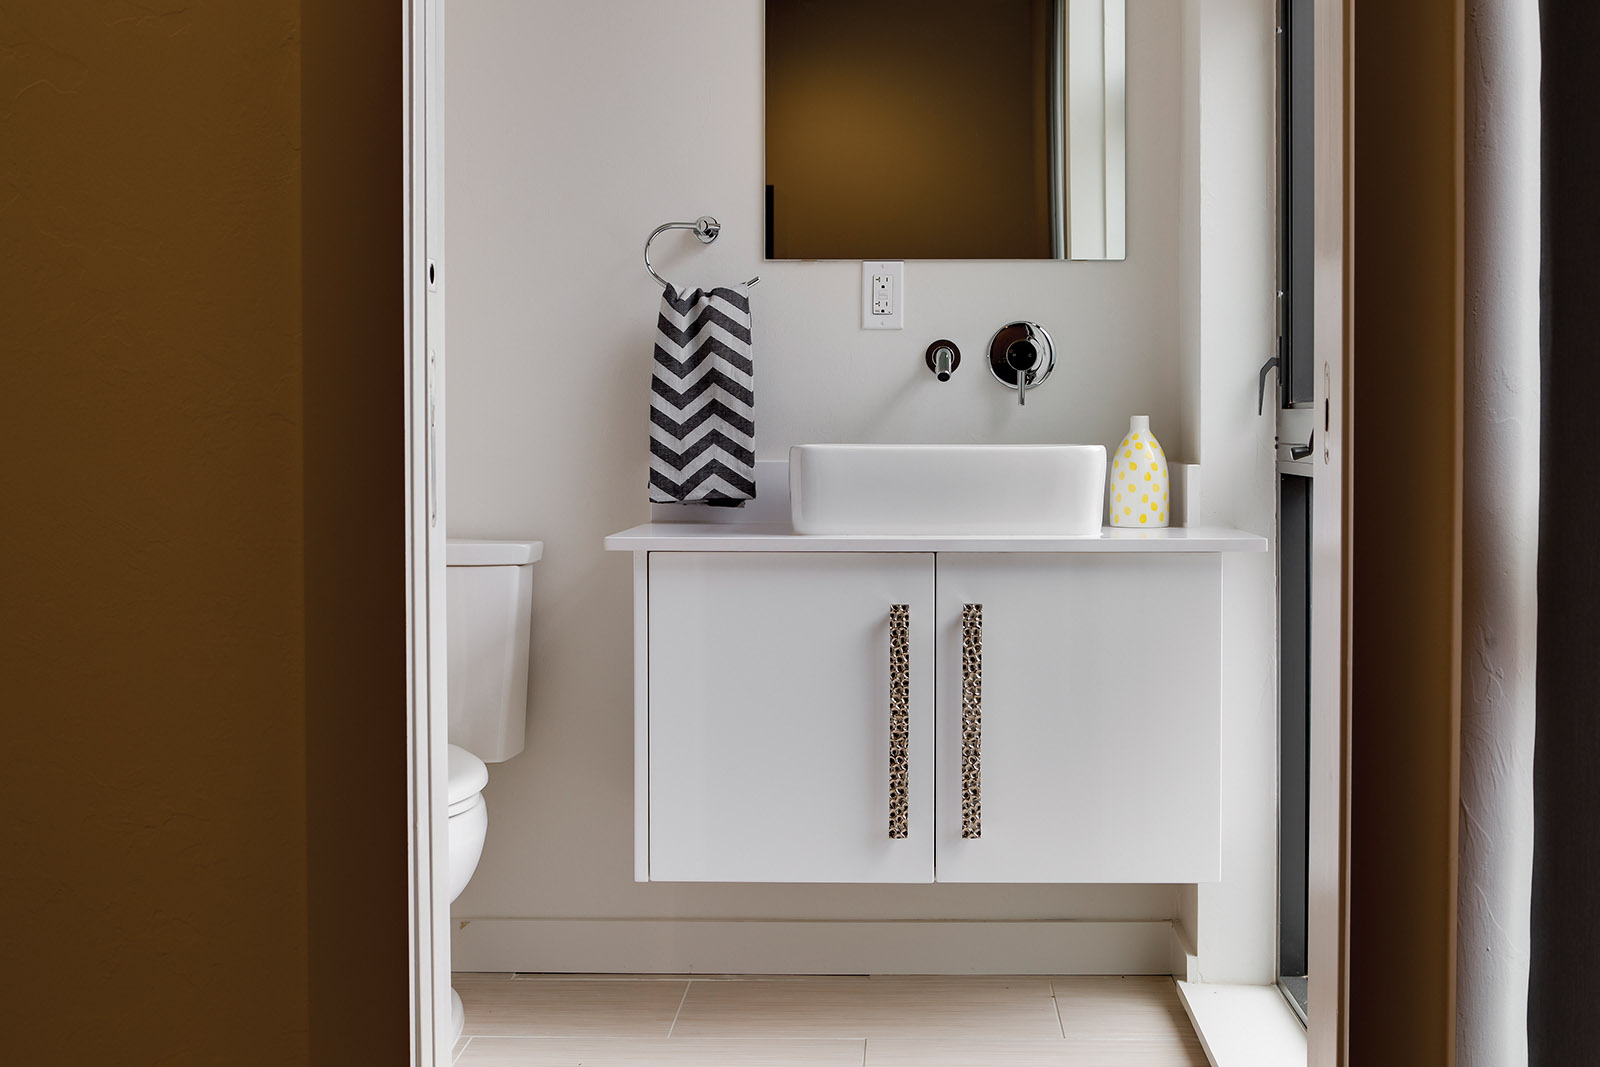 LOFT BATHROOM: White Cabinetry